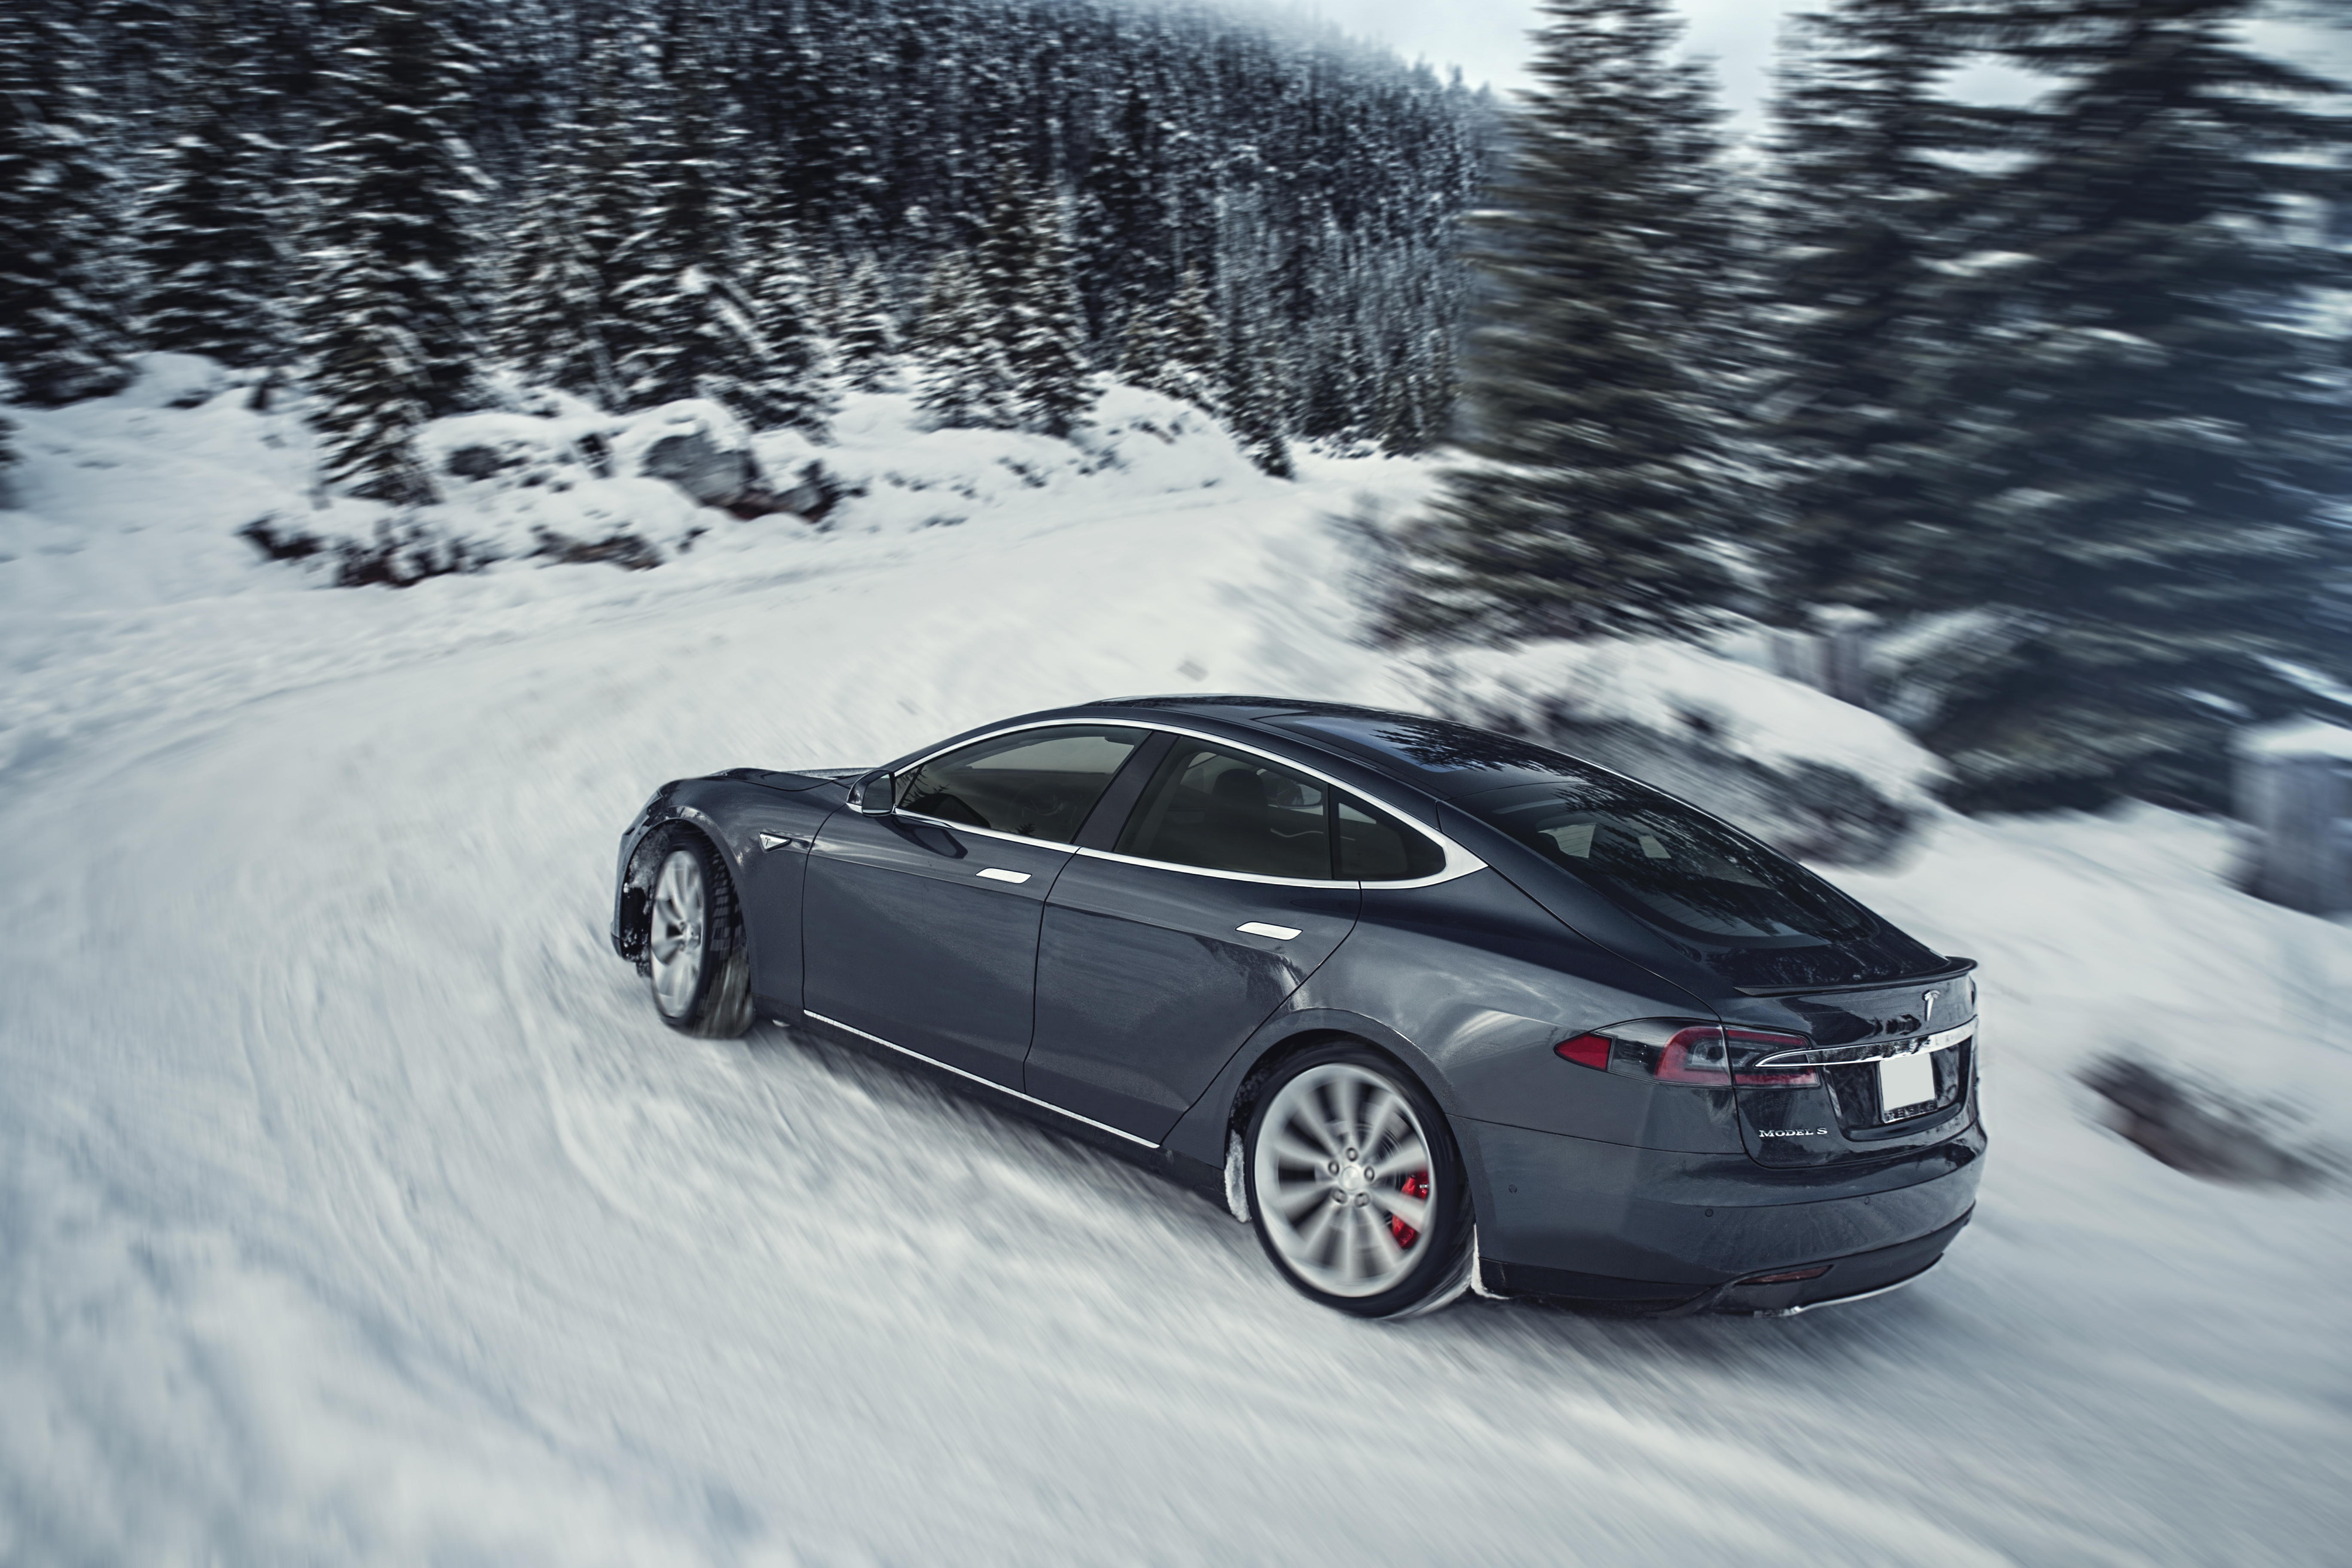 Grey Model S Winter Turn